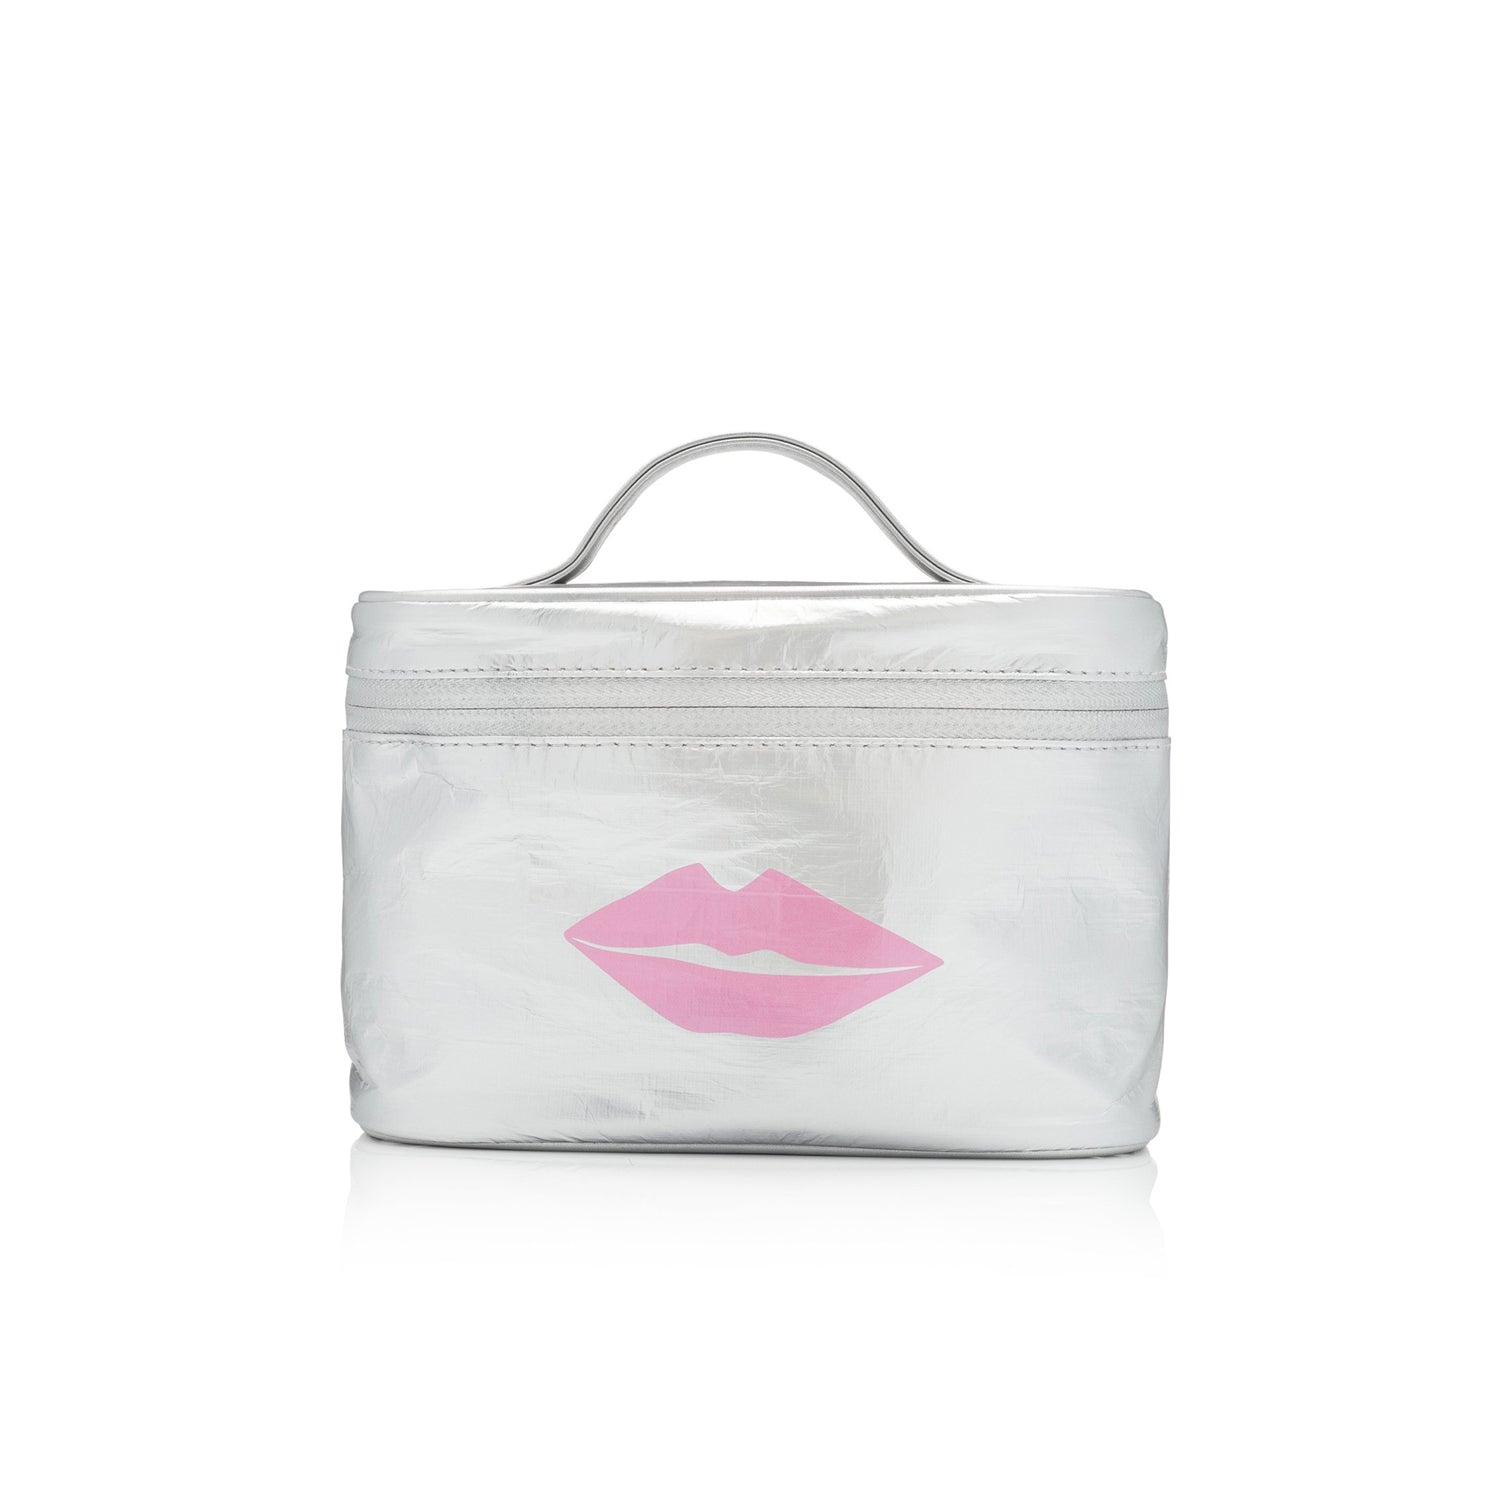 Last One! Cosmetic Case - Lunch Box - Silver with Pink Lips